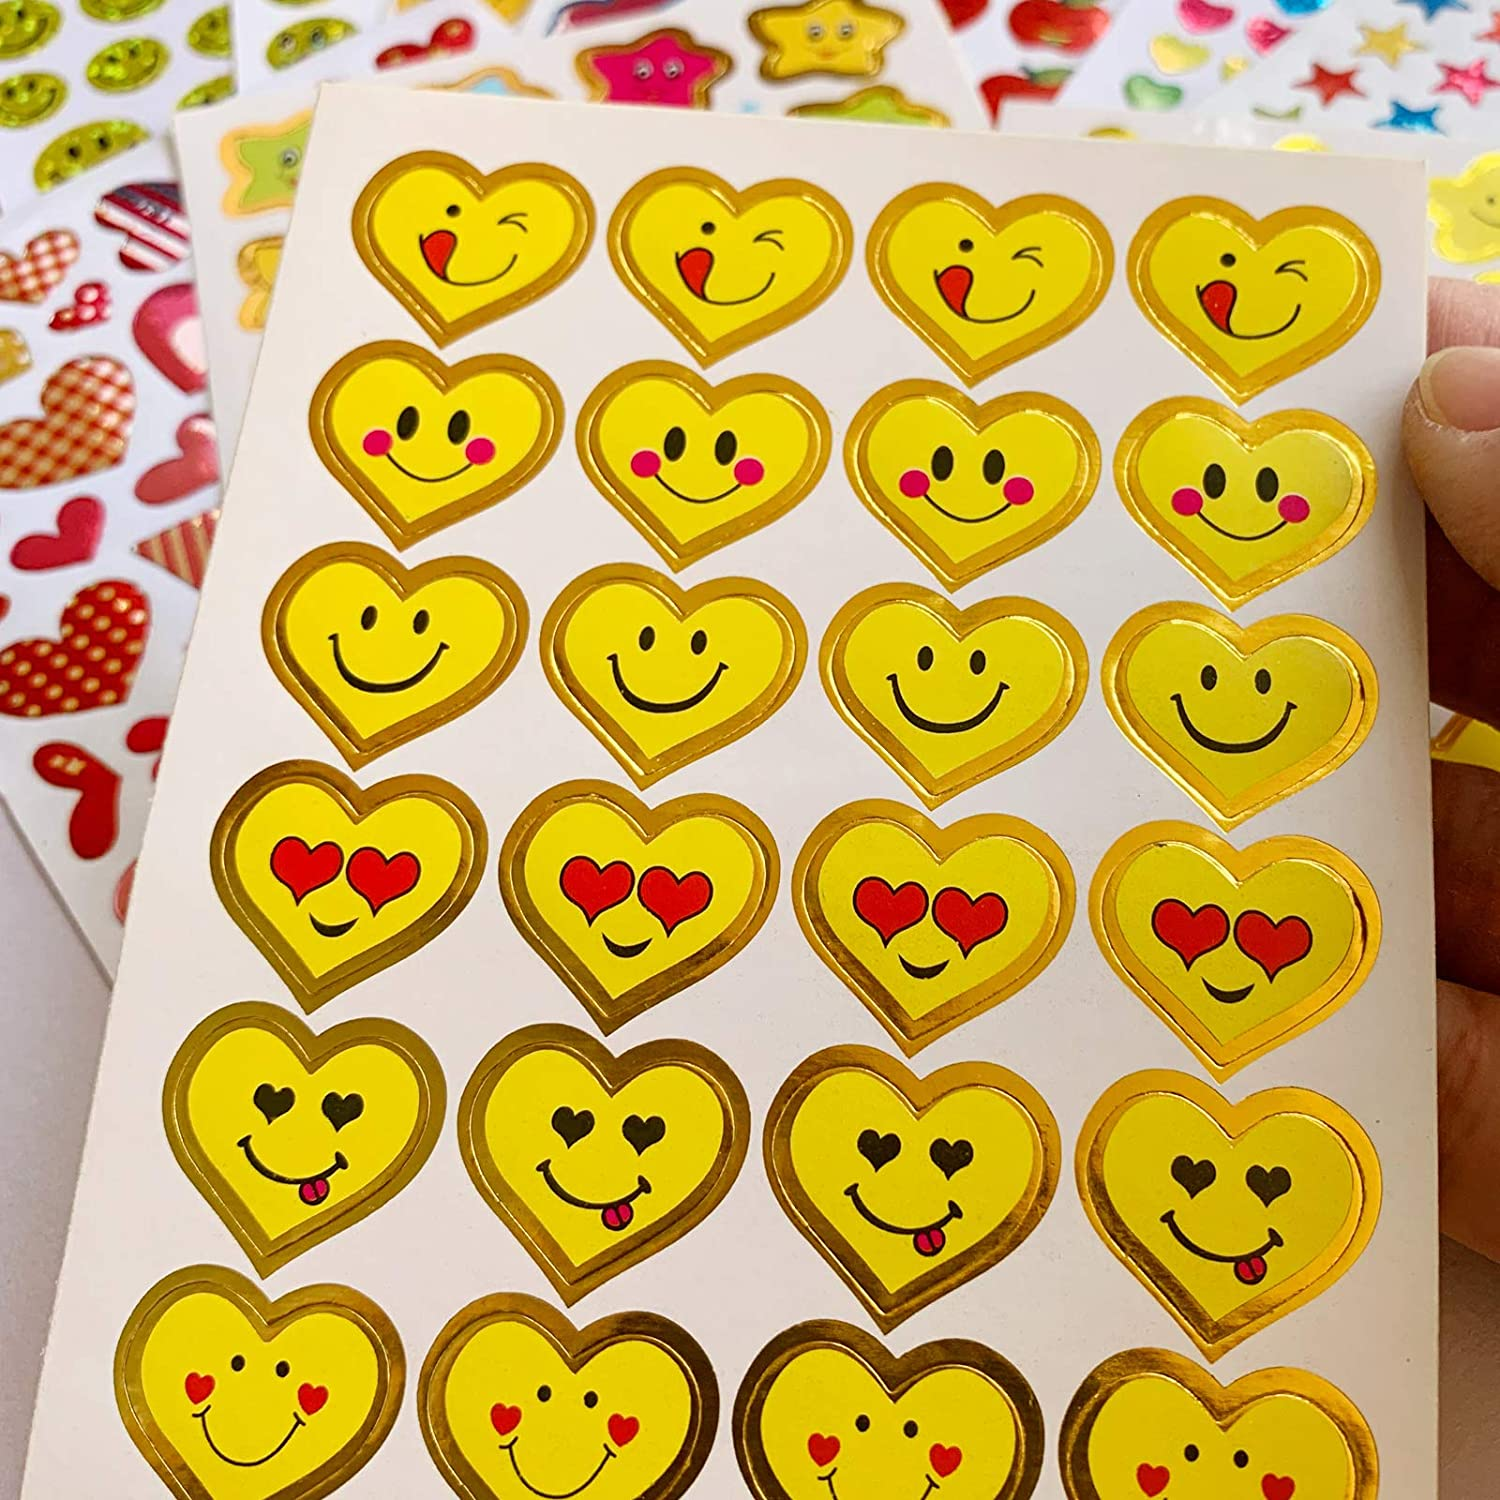 6120 Reward Stickers for Teachers Mega Value Pack,Teacher Stickers for Kids.Incentive Stickers for Teacher Supplies Classroom Supplies Including Smiley Face Stars and Emoji for Teachers Reward